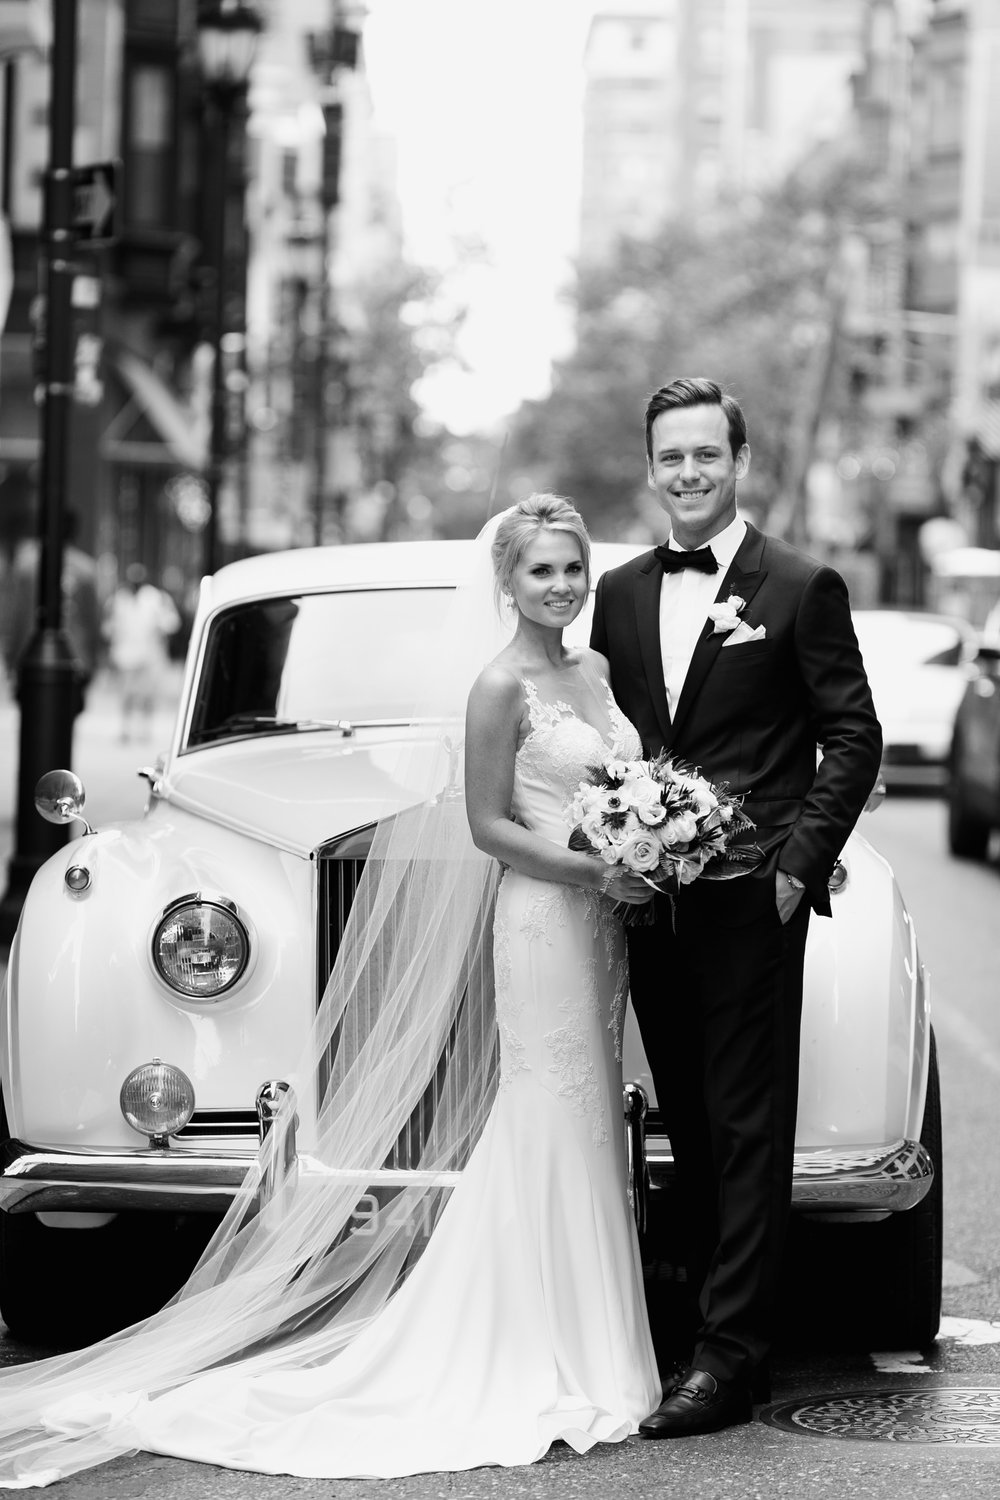 photography-wedding-weddings-natural-candid-union league-philadelphia-black tie-city hall-broad street-editorial-modern-fine-art-22.JPG